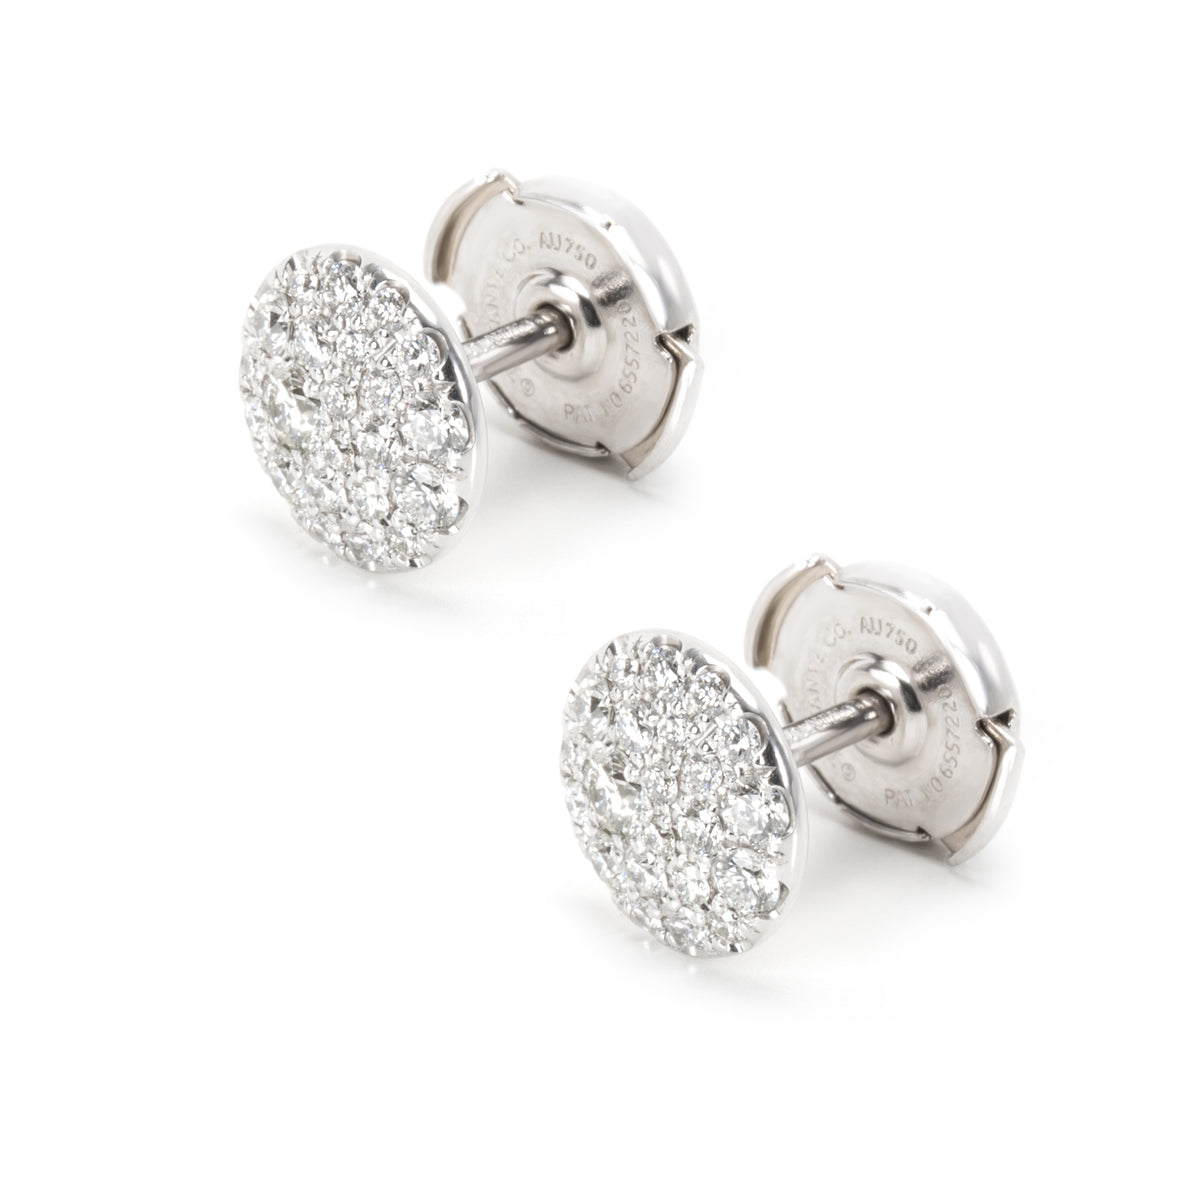 Tiffany & Co. Pave Diamond Stud Earring in 18k White Gold 0.4 CTW